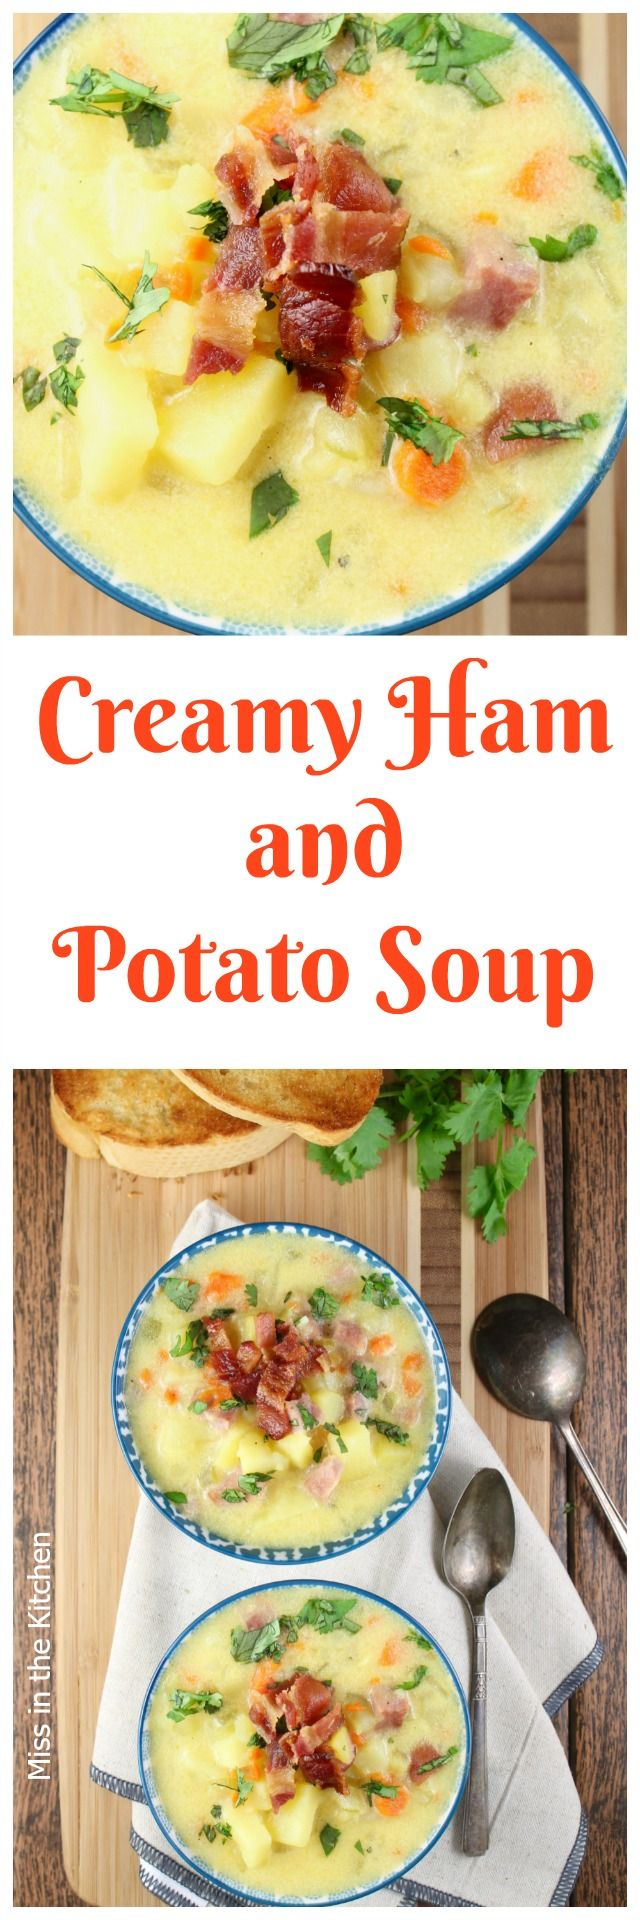 Creamy. Ham and Potato Soup Recipe perfect for leftover ham and makes a hearty and delicious dinner! Made with DairyPure milk. From MissintheKitchen.com #ad